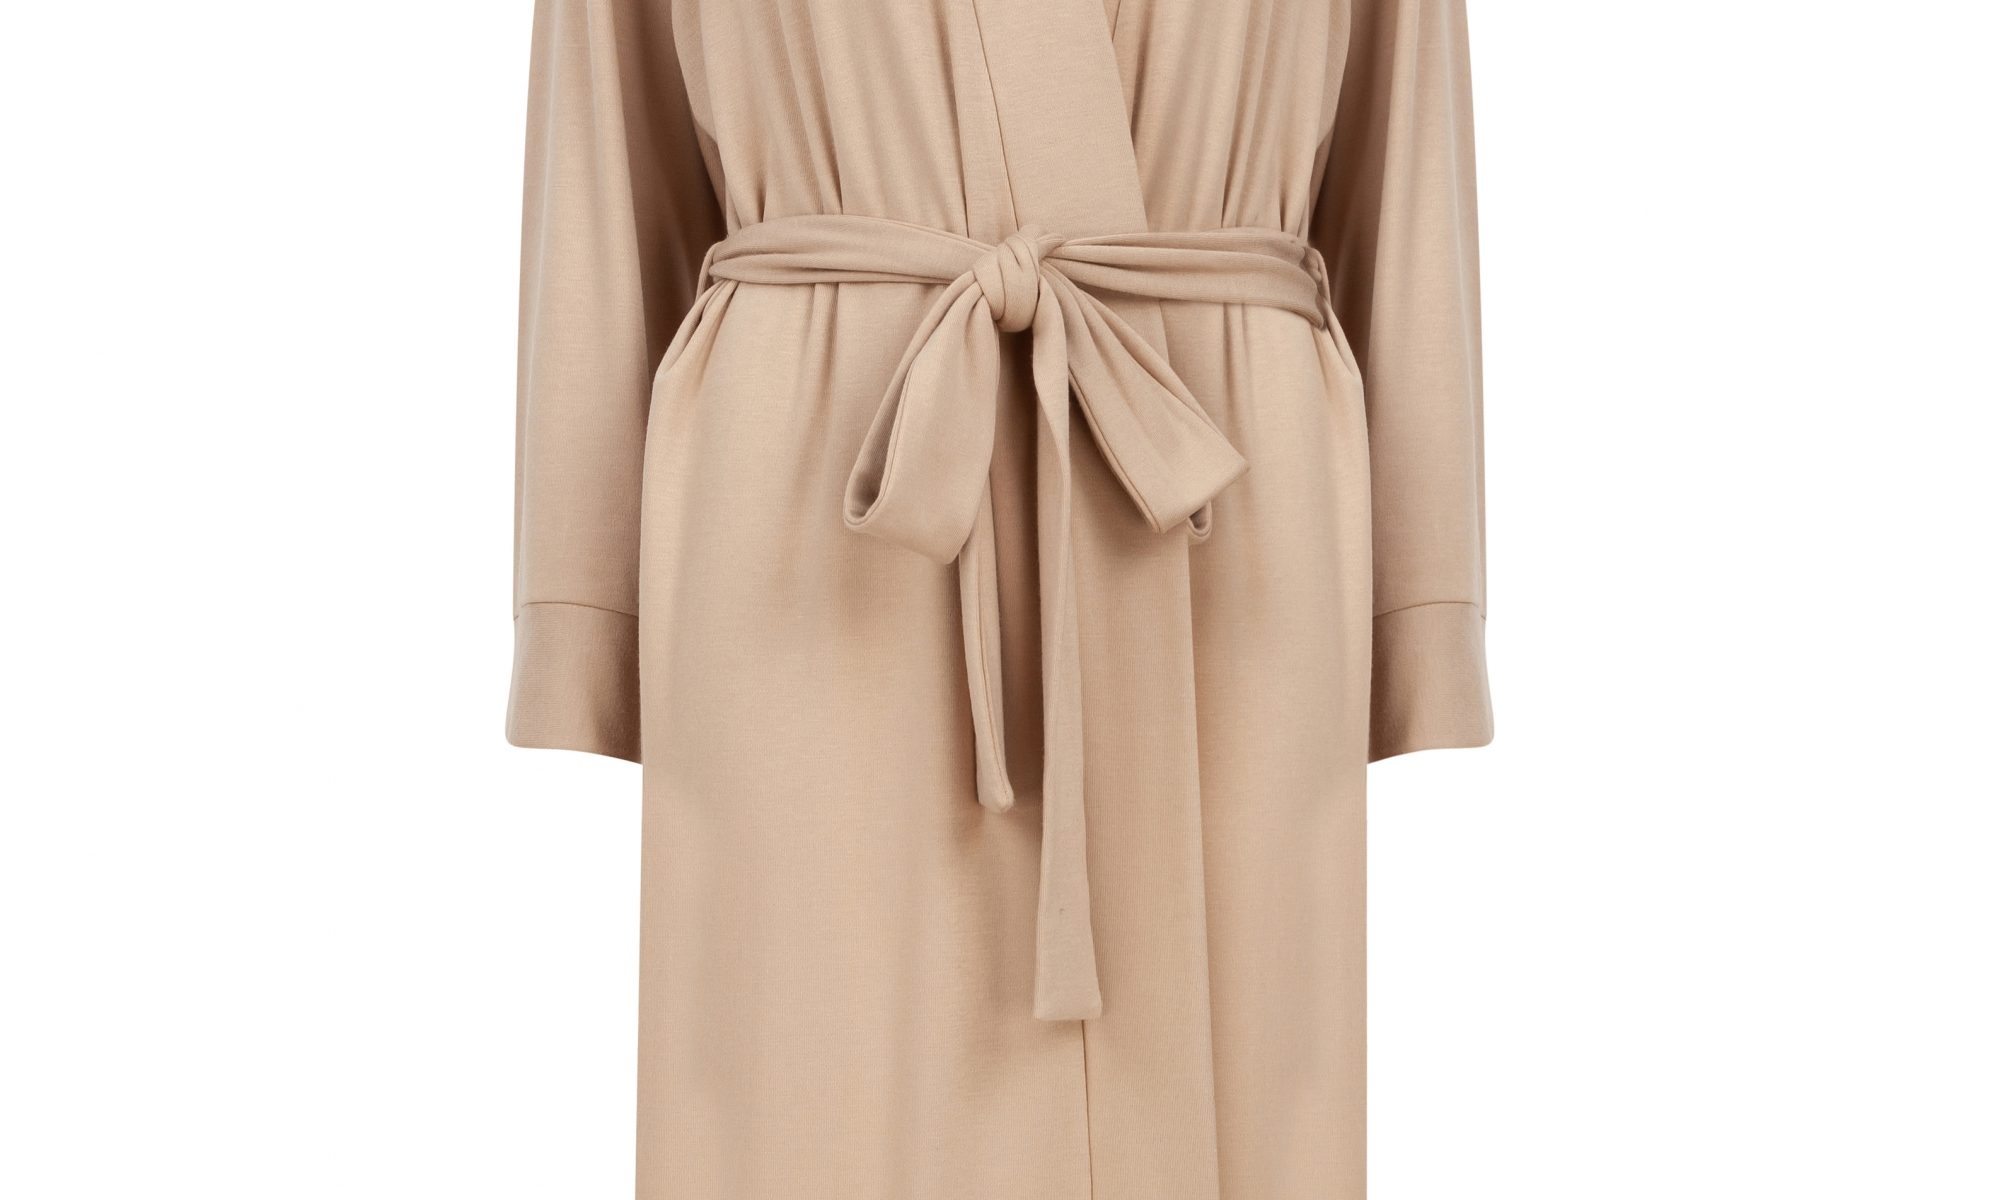 Slip on gown in sand beige